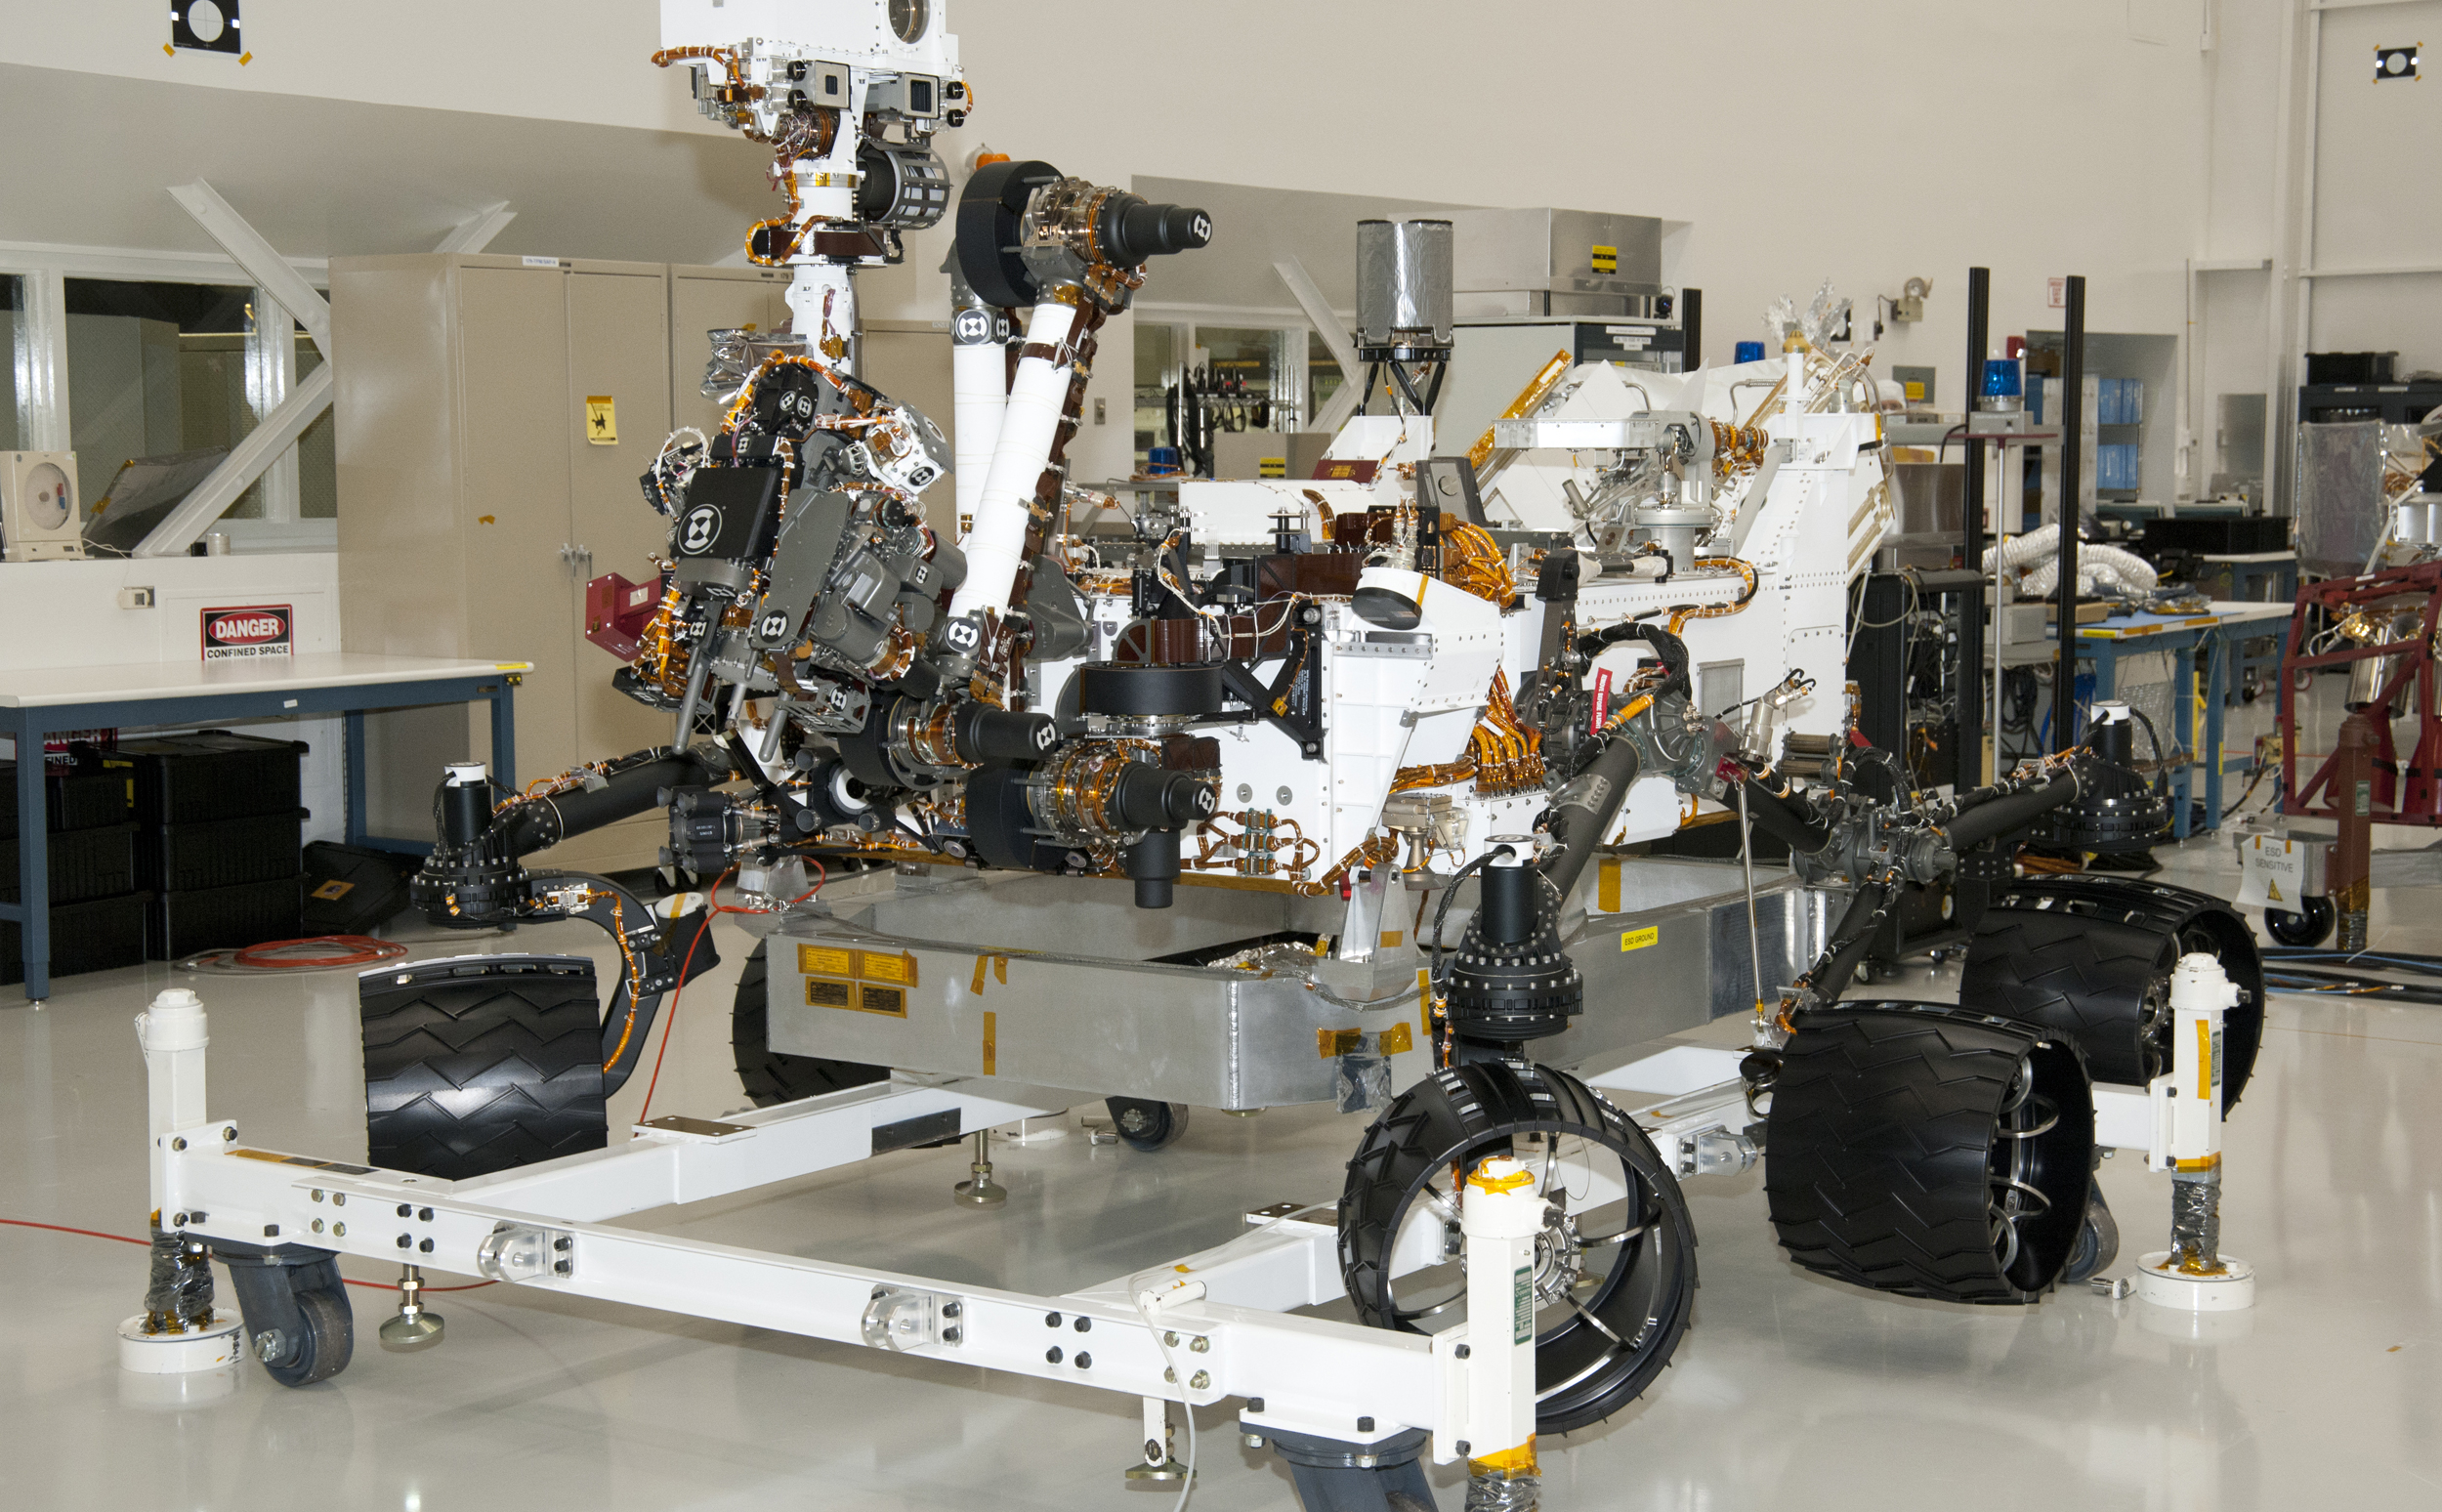 NASA Mars Rover Curiosity at JPL, View from Front Left Corner